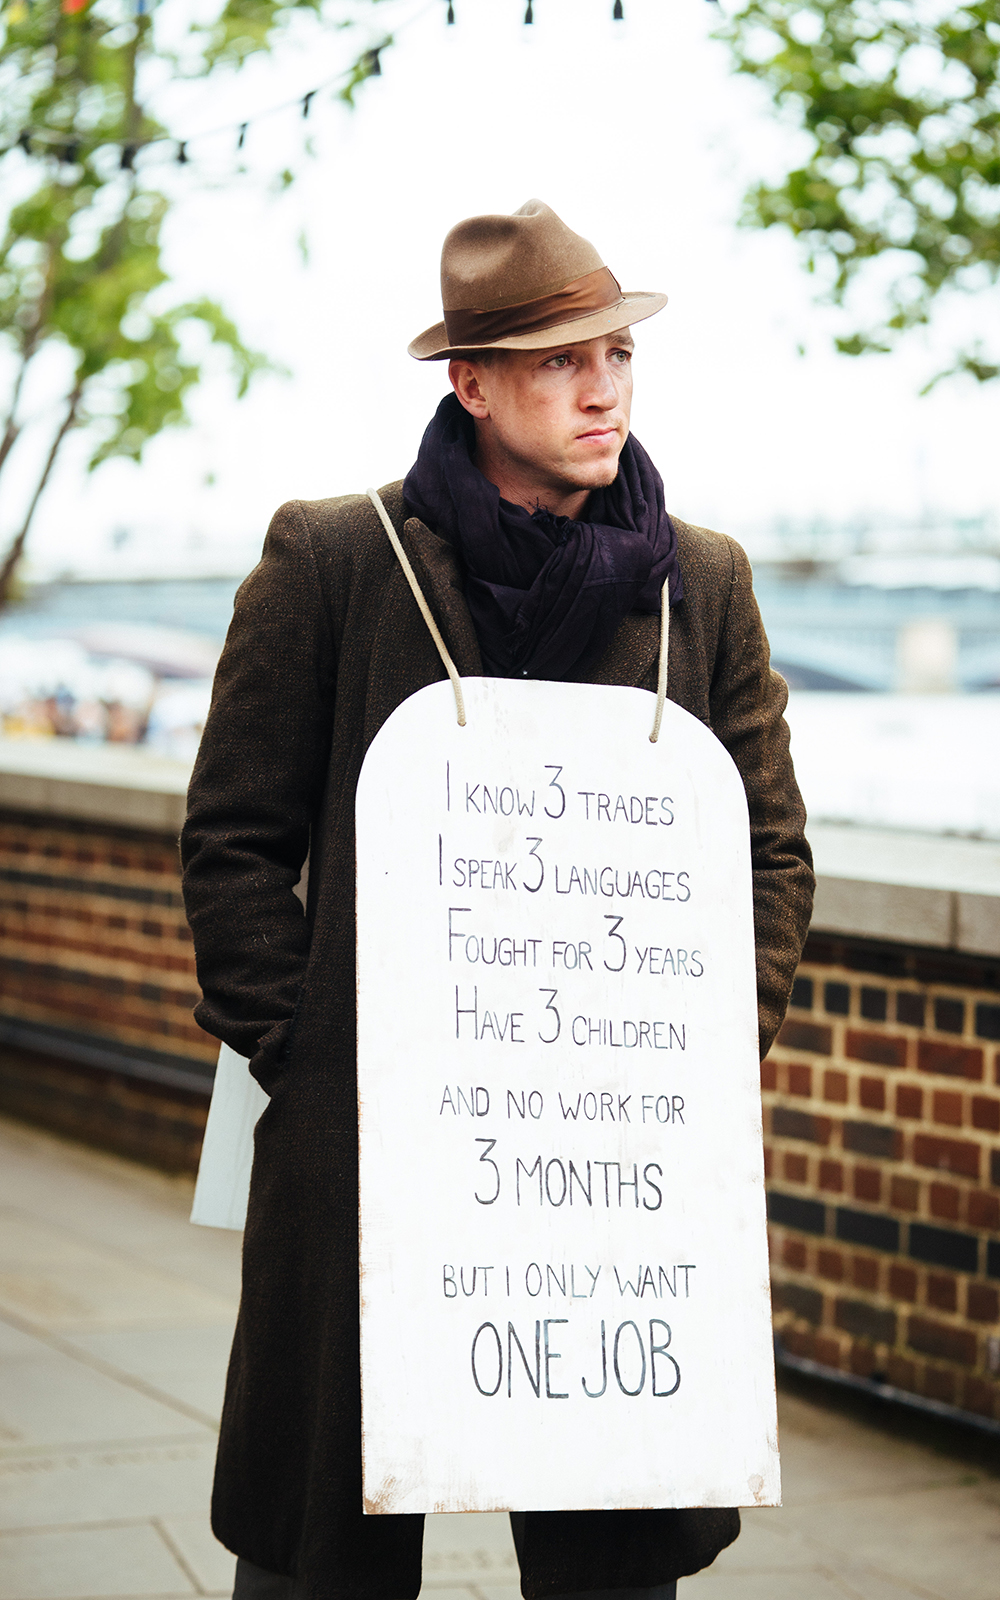 A man wearing a brown overcoat and hat stands glum with a billboard, outside.